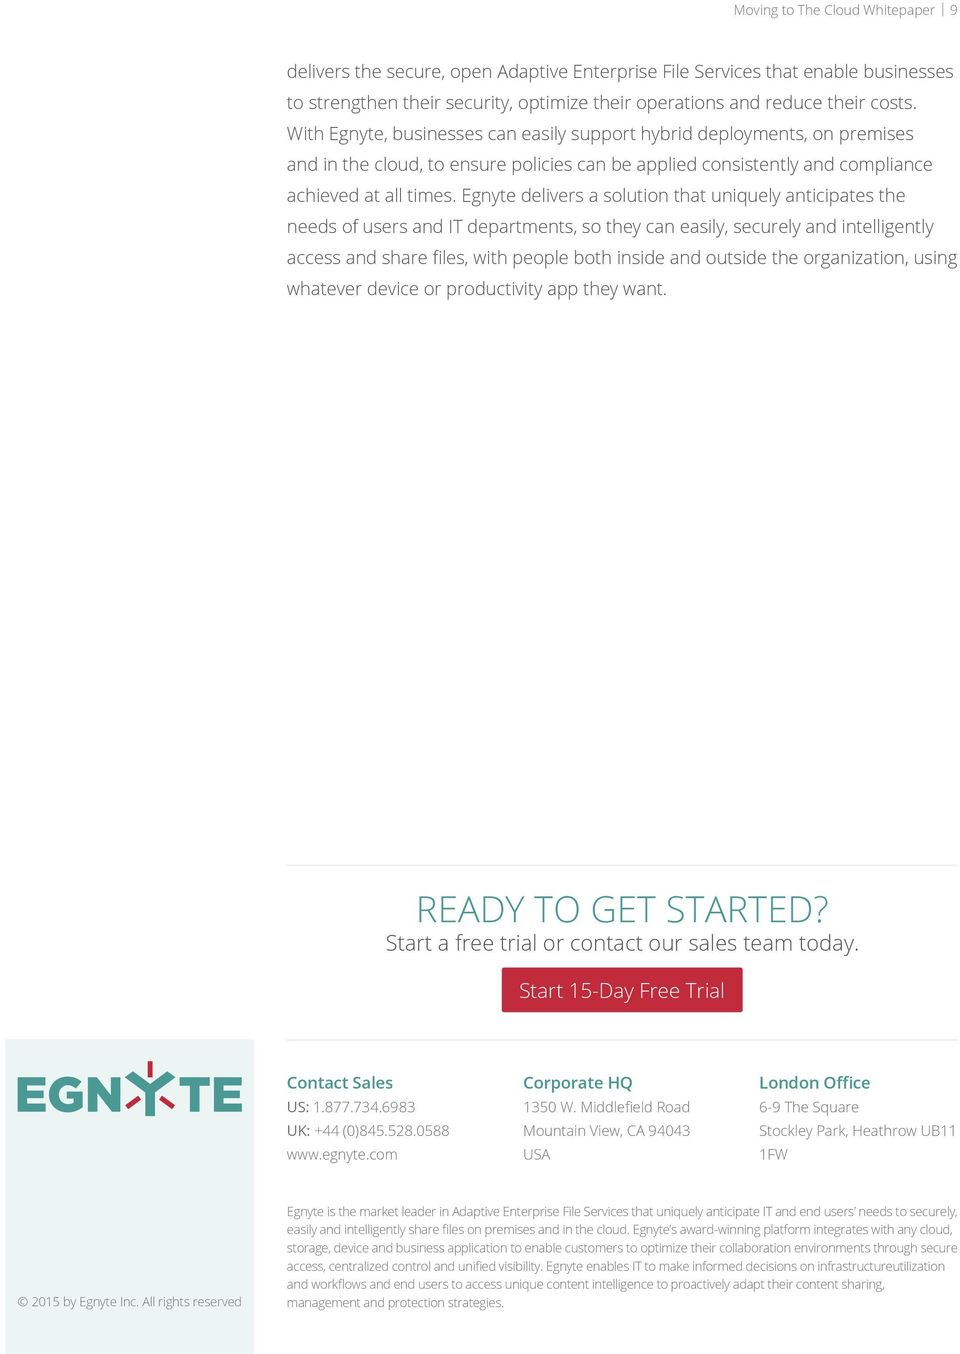 Egnyte delivers a solution that uniquely anticipates the needs of users and IT departments, so they can easily, securely and intelligently access and share files, with people both inside and outside